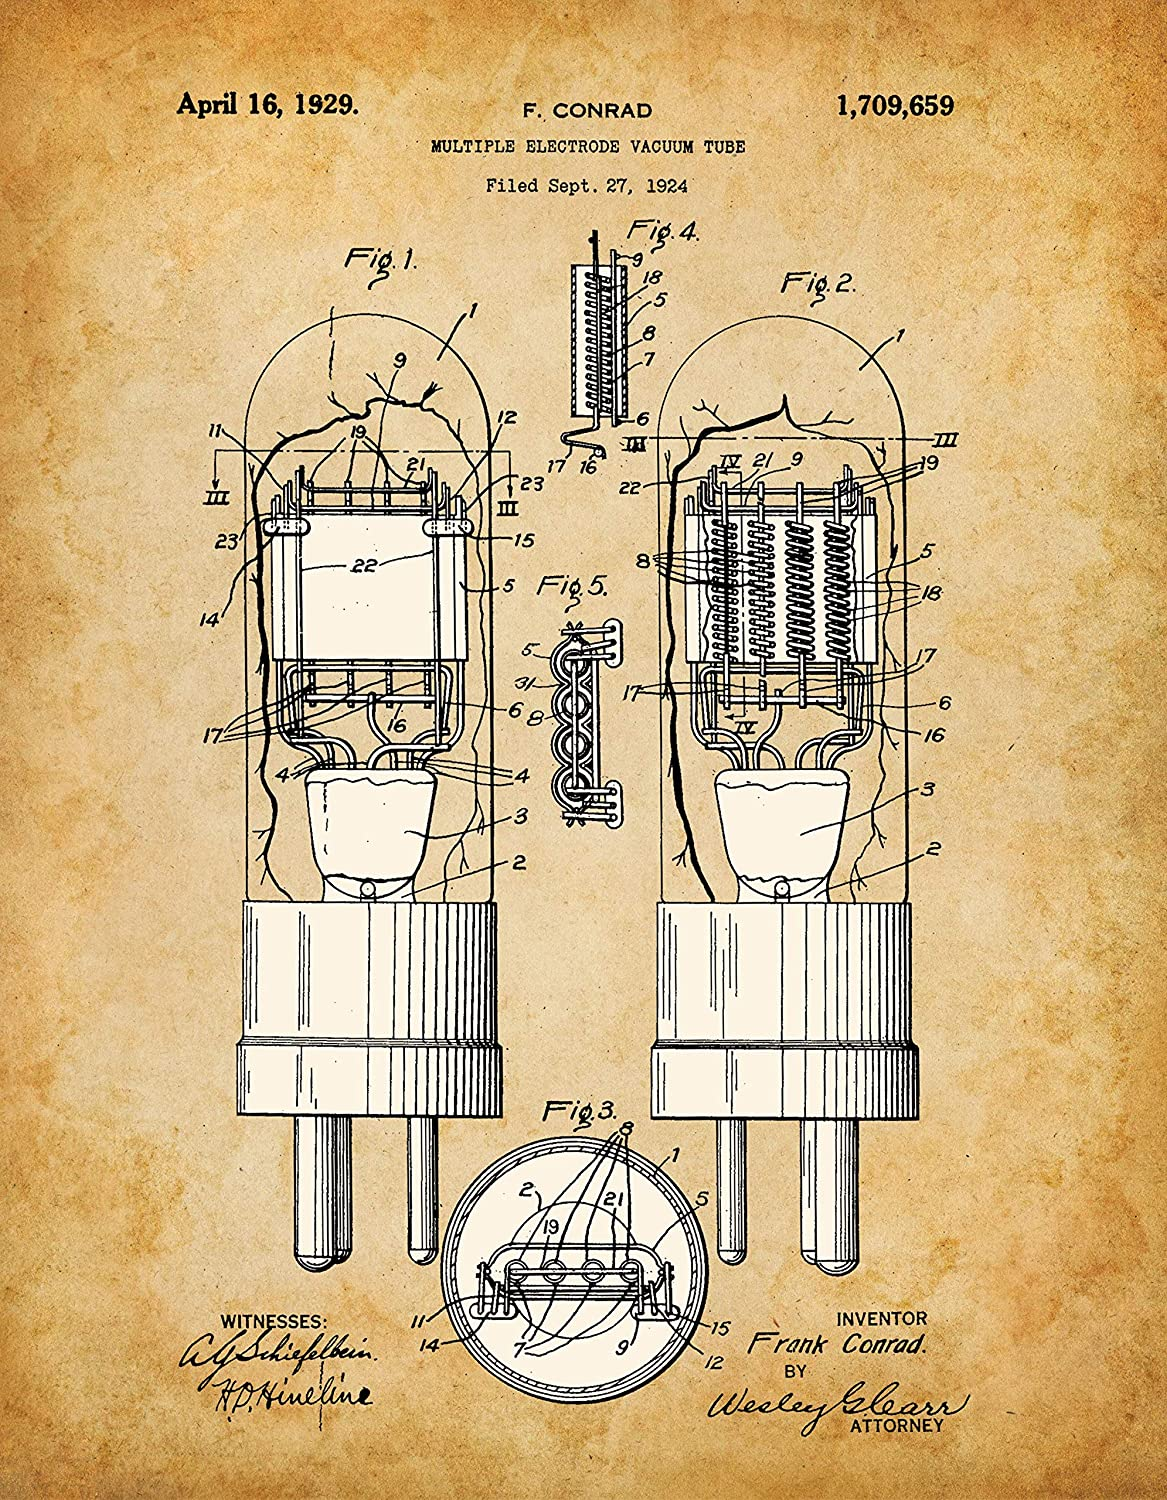 Poster - Vacuum Tube Patent - Choose Unframed Poster or Canvas - Great Decor and Gift for Amateur Radio Operators and Stereophiles Under $25